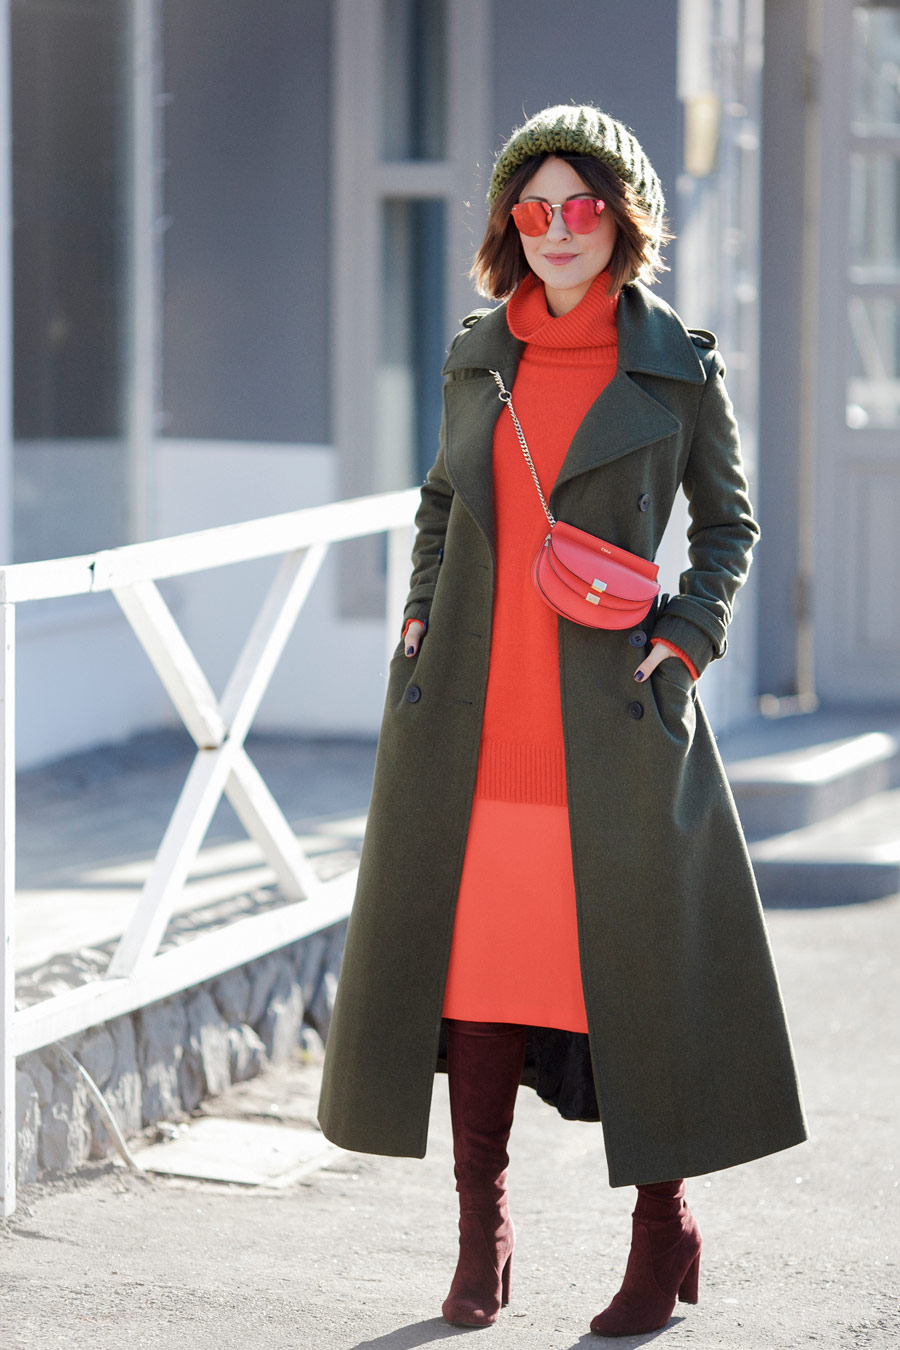 military coat outfits, flare red color outfits, winter style ideas,